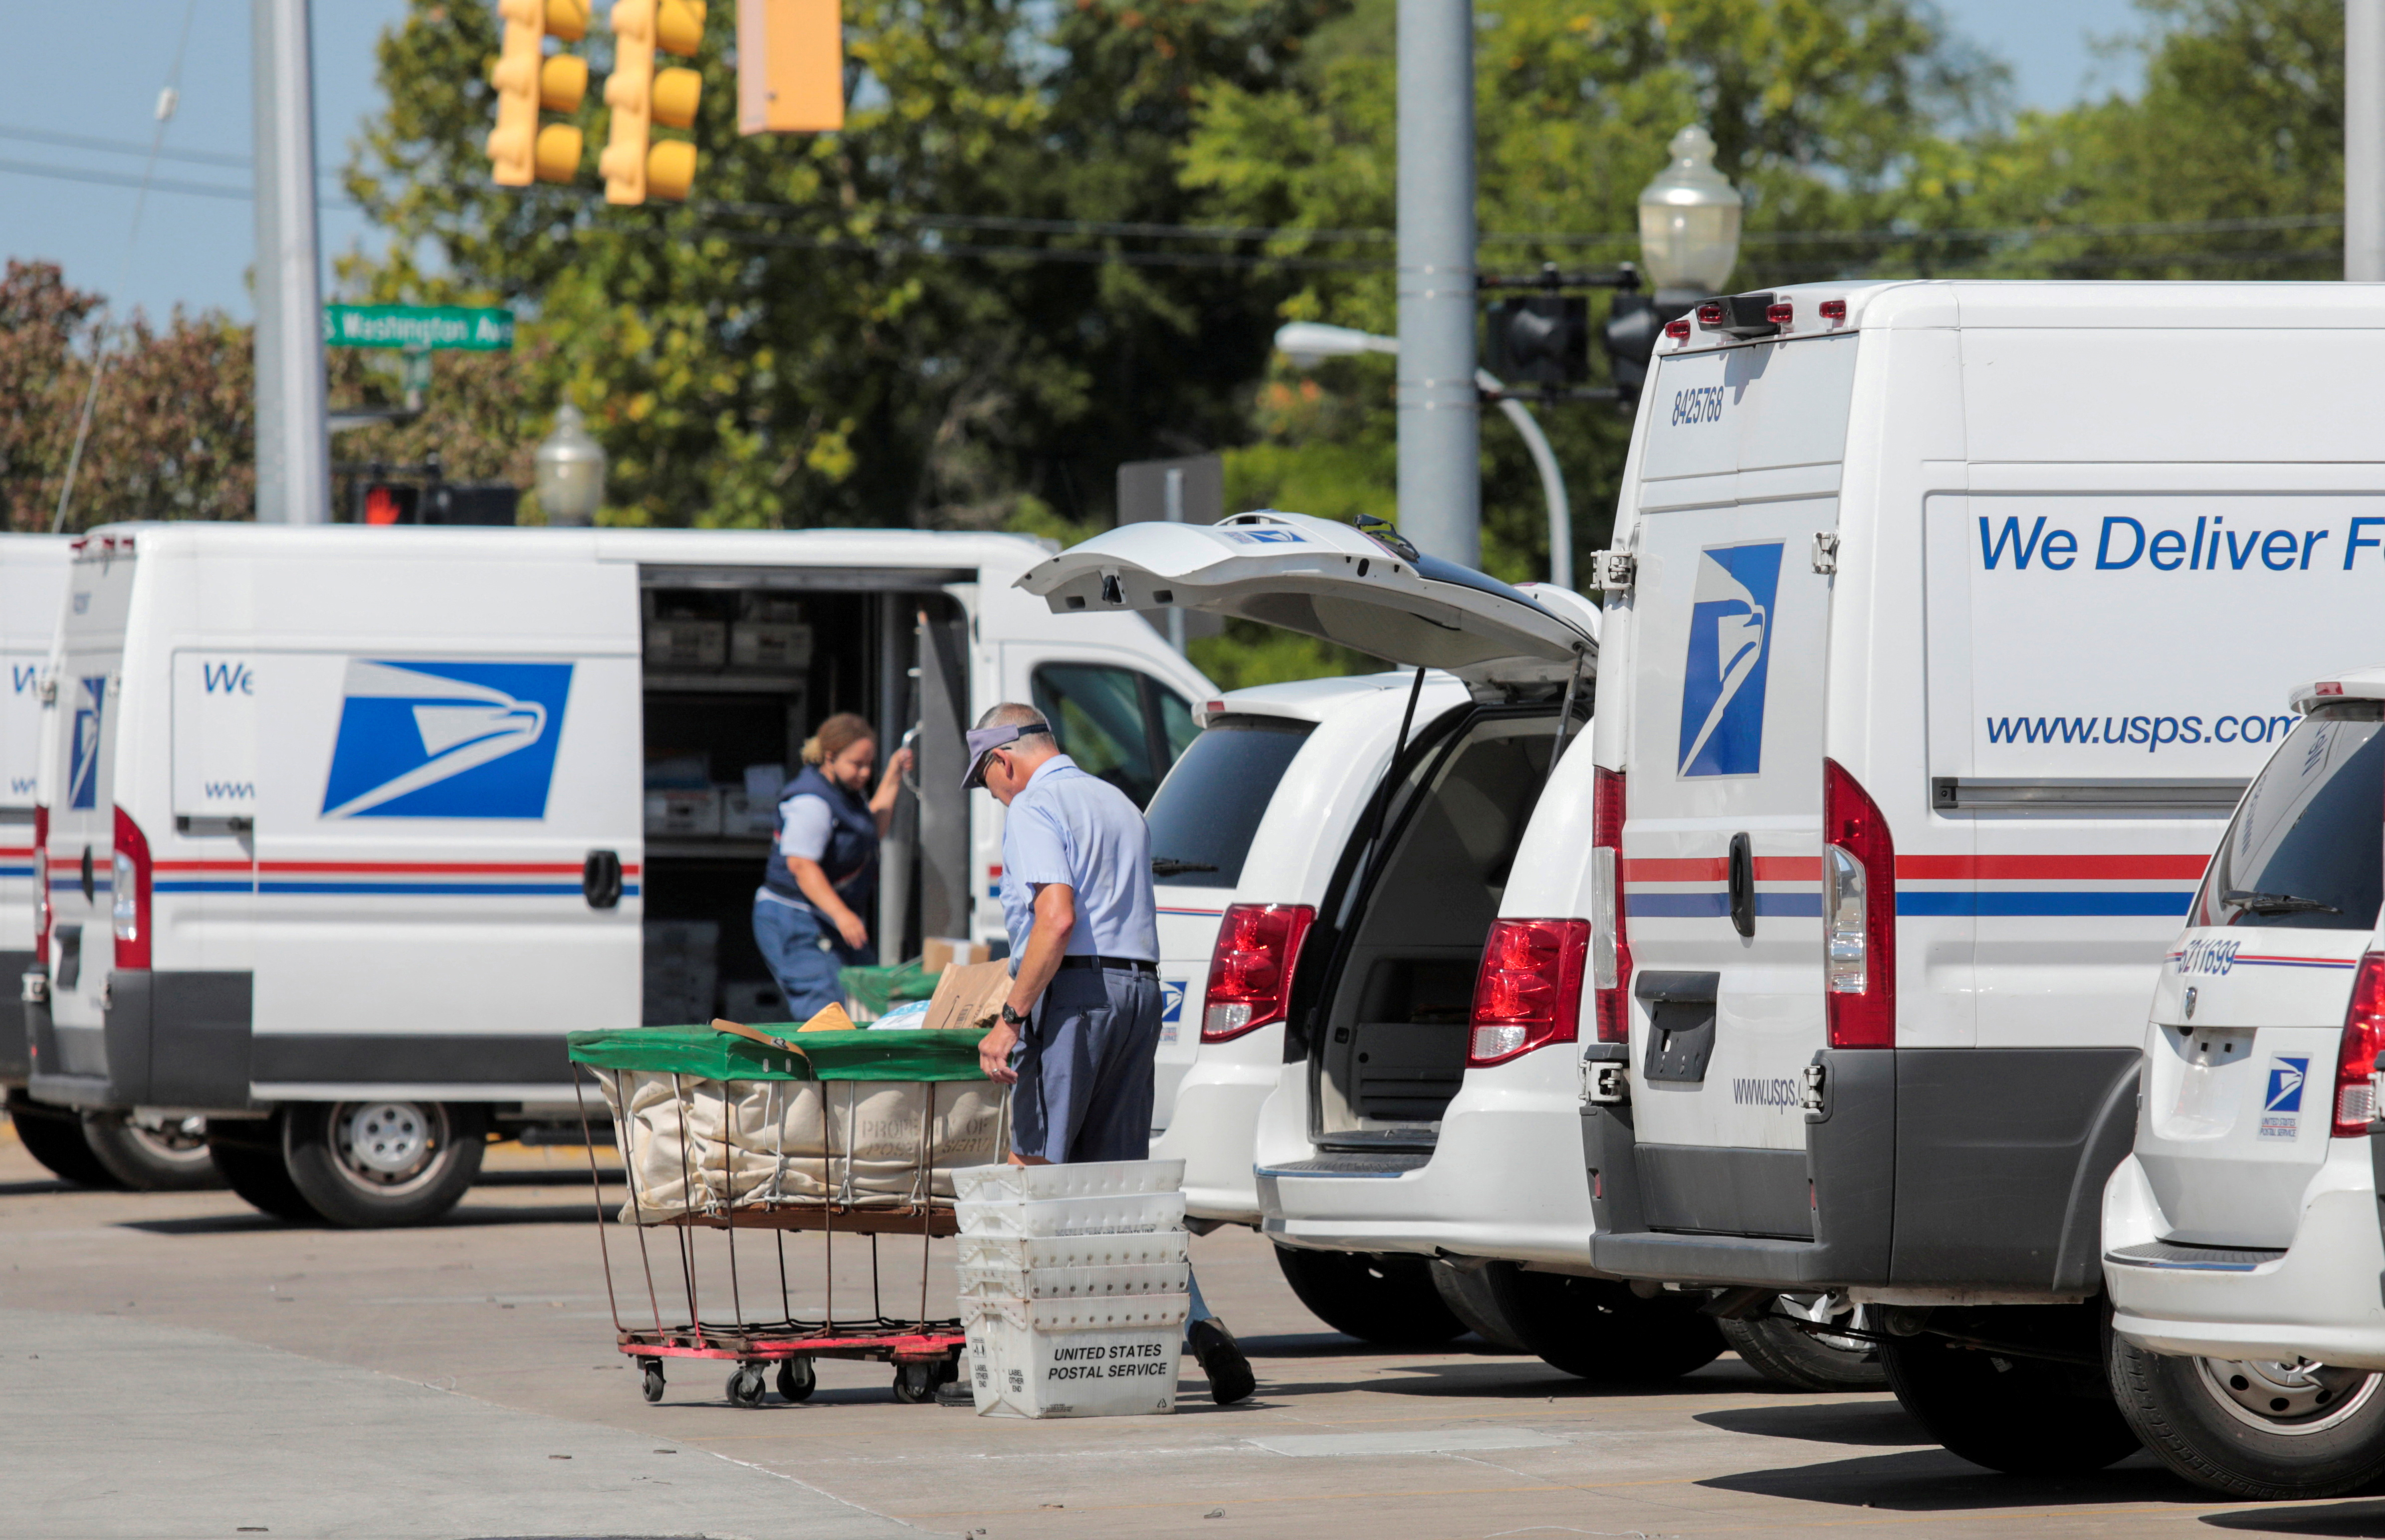 United States Postal Service (USPS) workers load mail into delivery trucks outside a post office in Royal Oak, Michigan, U.S. August 22, 2020. REUTERS/Rebecca Cook